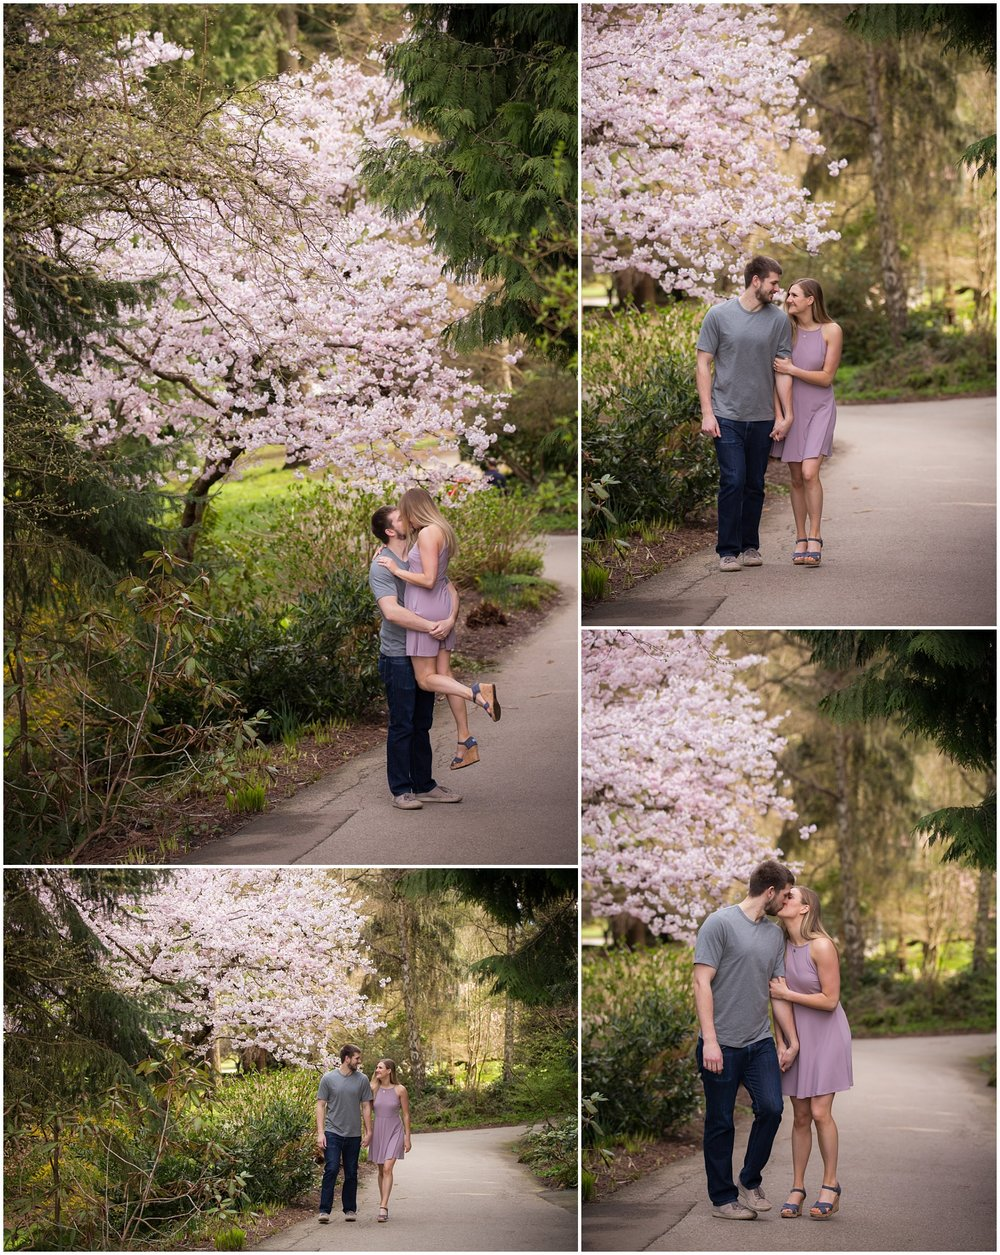 Amazing Day Photography - Cherry Blossom Engagement Session - Queen Elizabeth Park Engagement Session - Vancouver Engagement Photographer  (7).jpg